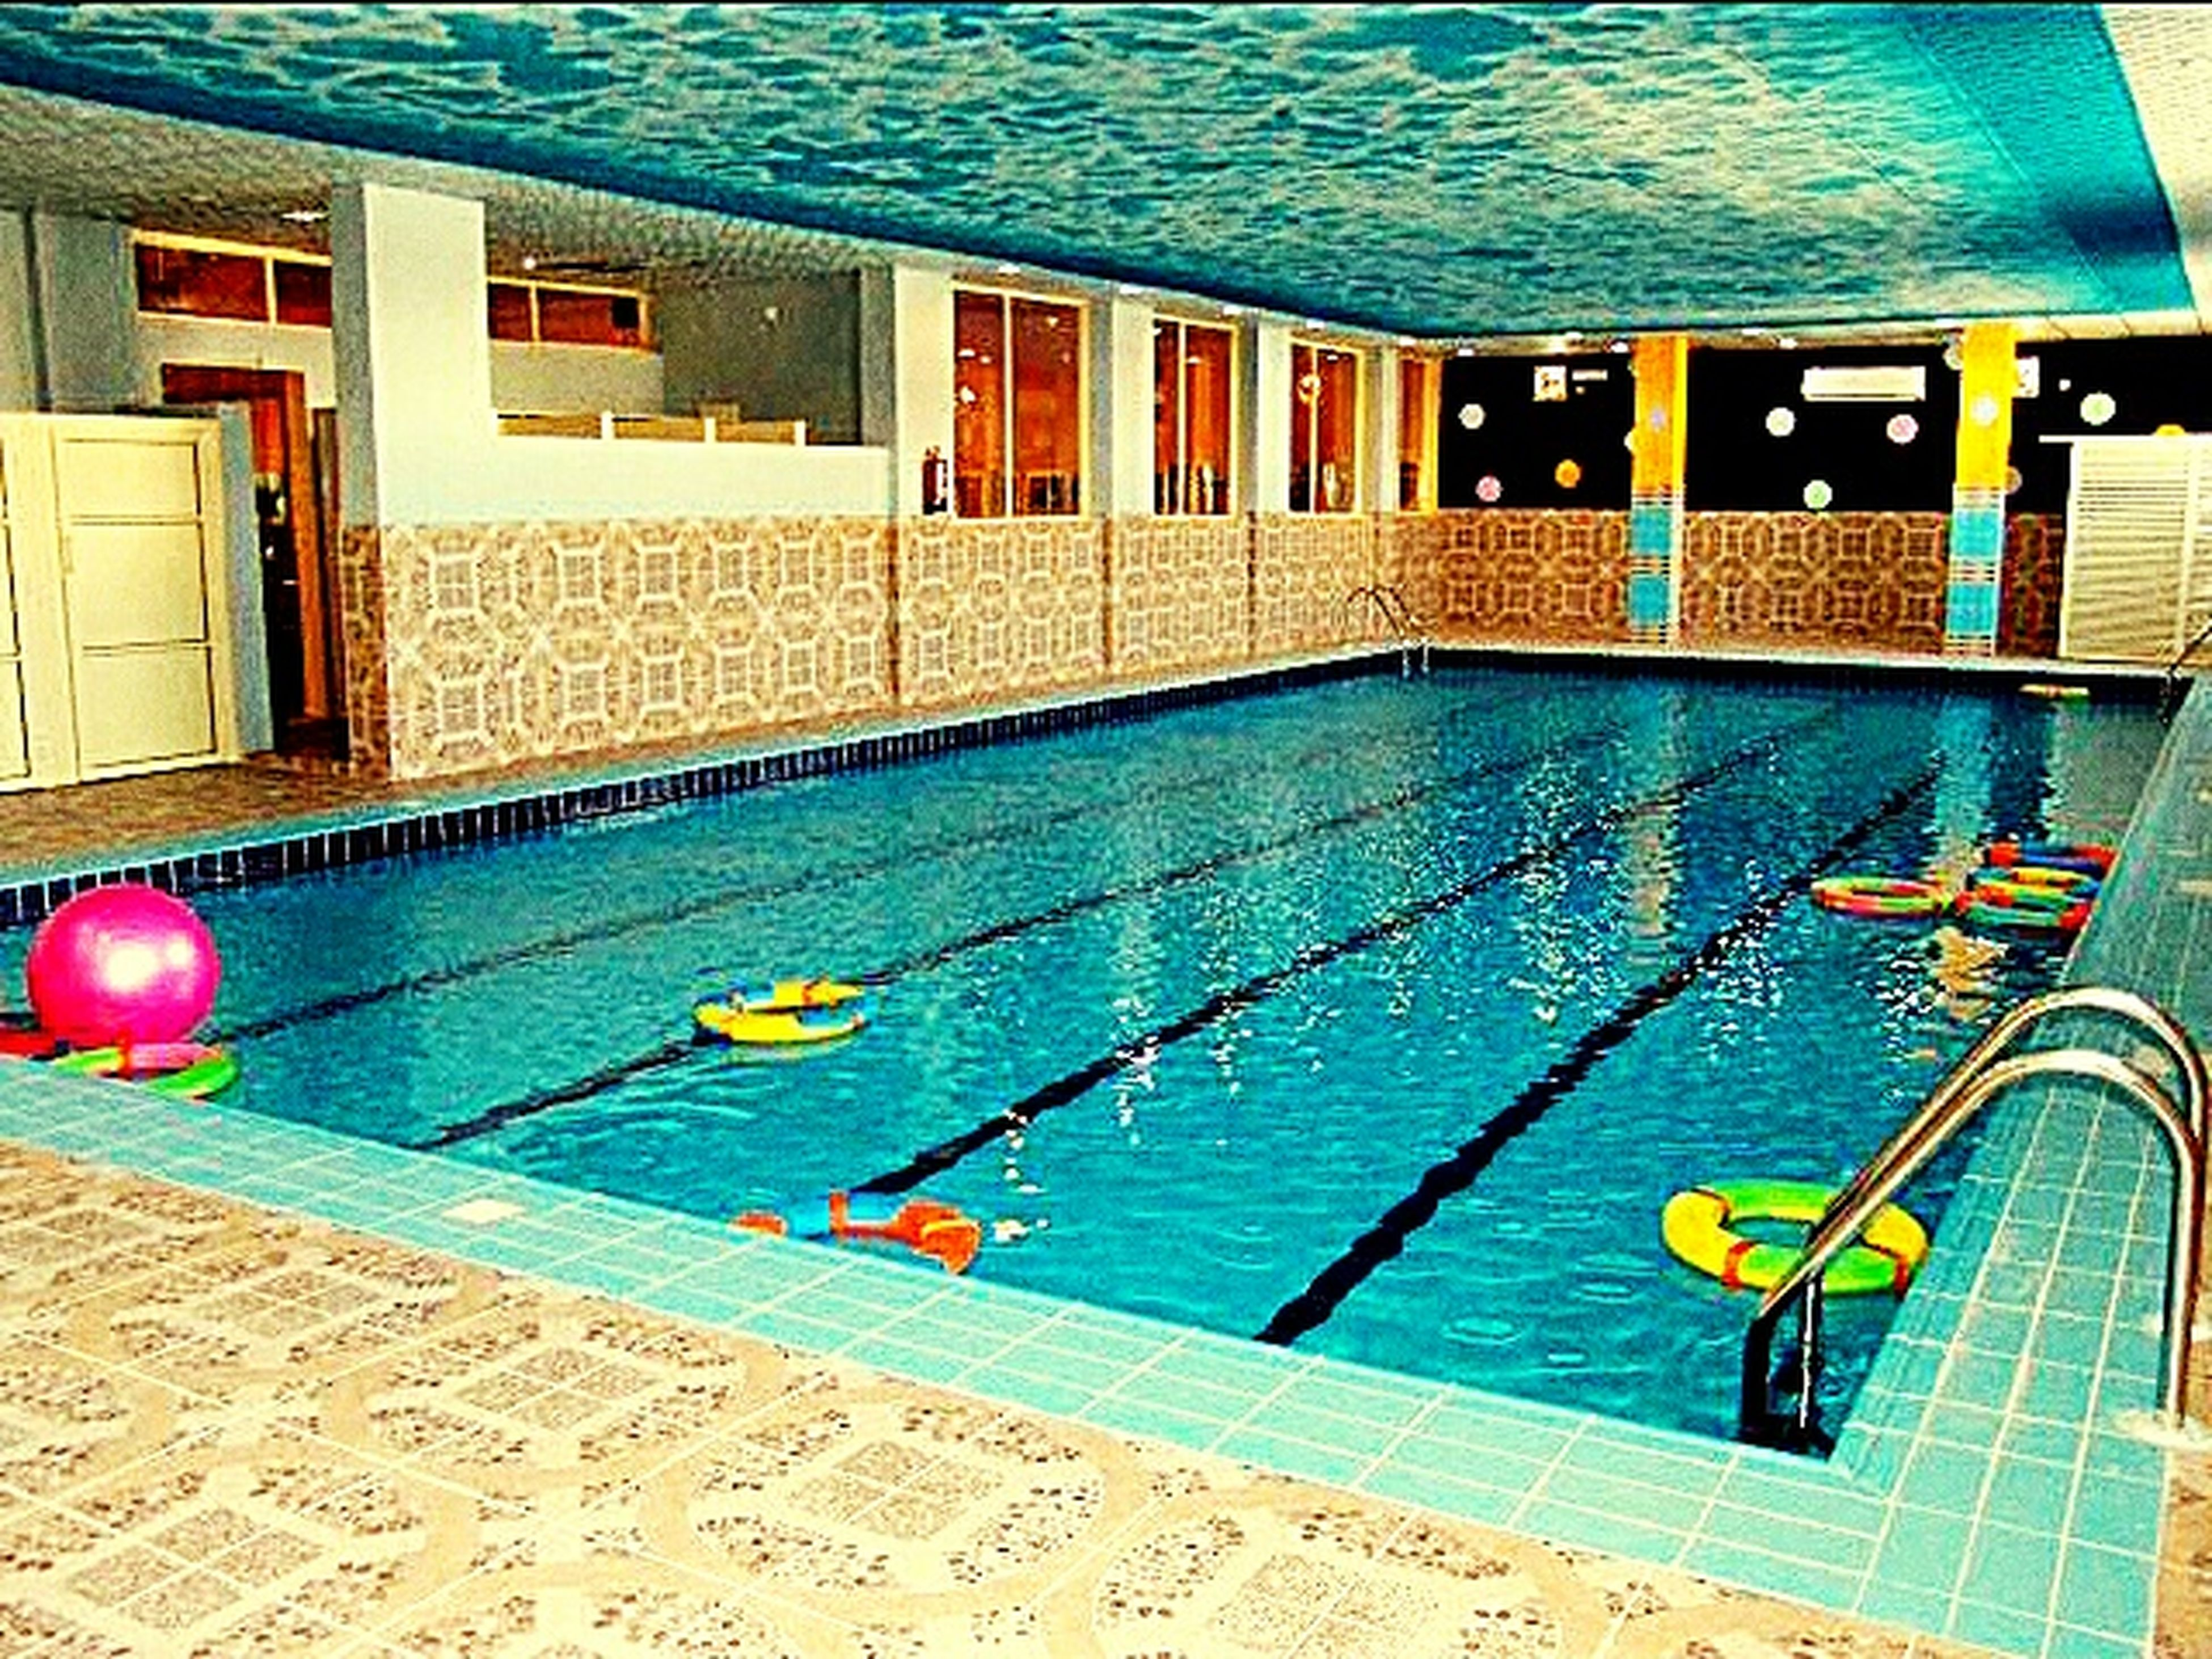 swimming pool, water, blue, no people, swimming lane marker, architecture, day, outdoors